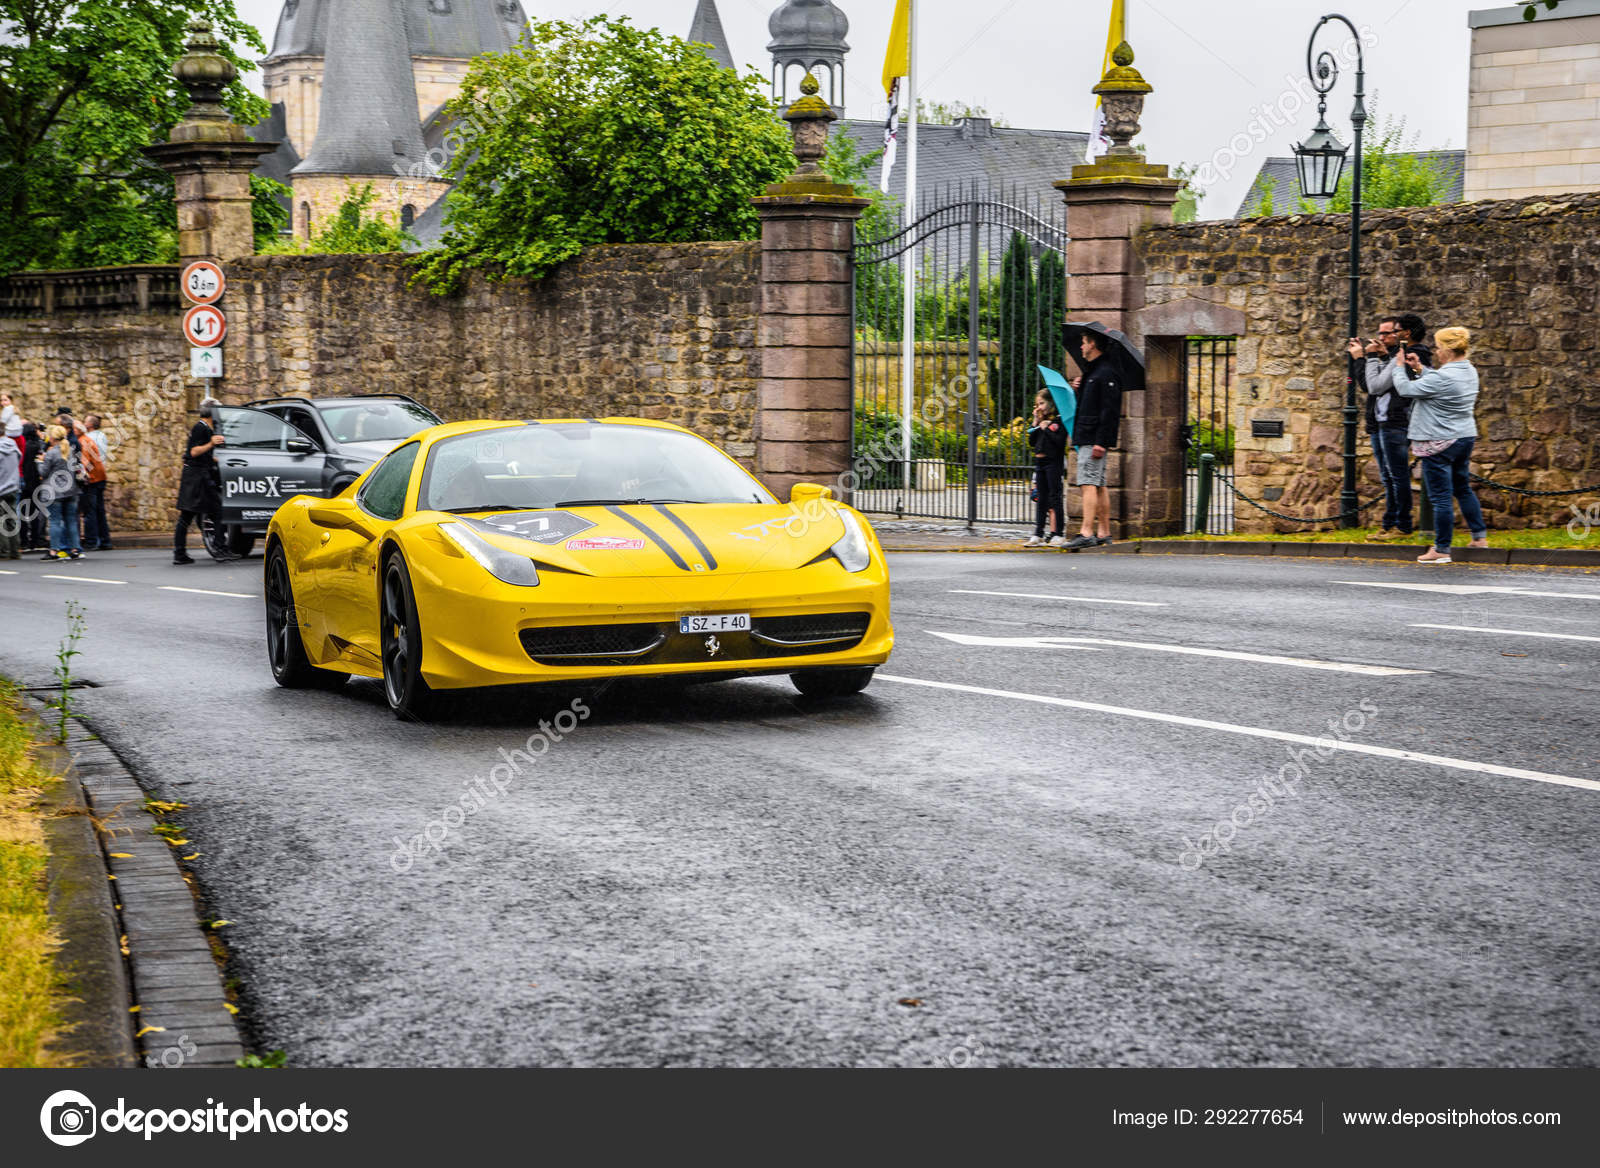 Germany Fulda Jul 2019 Yellow Ferrari 458 Spider Coupe Was I Stock Editorial Photo C Eagle2308 292277654